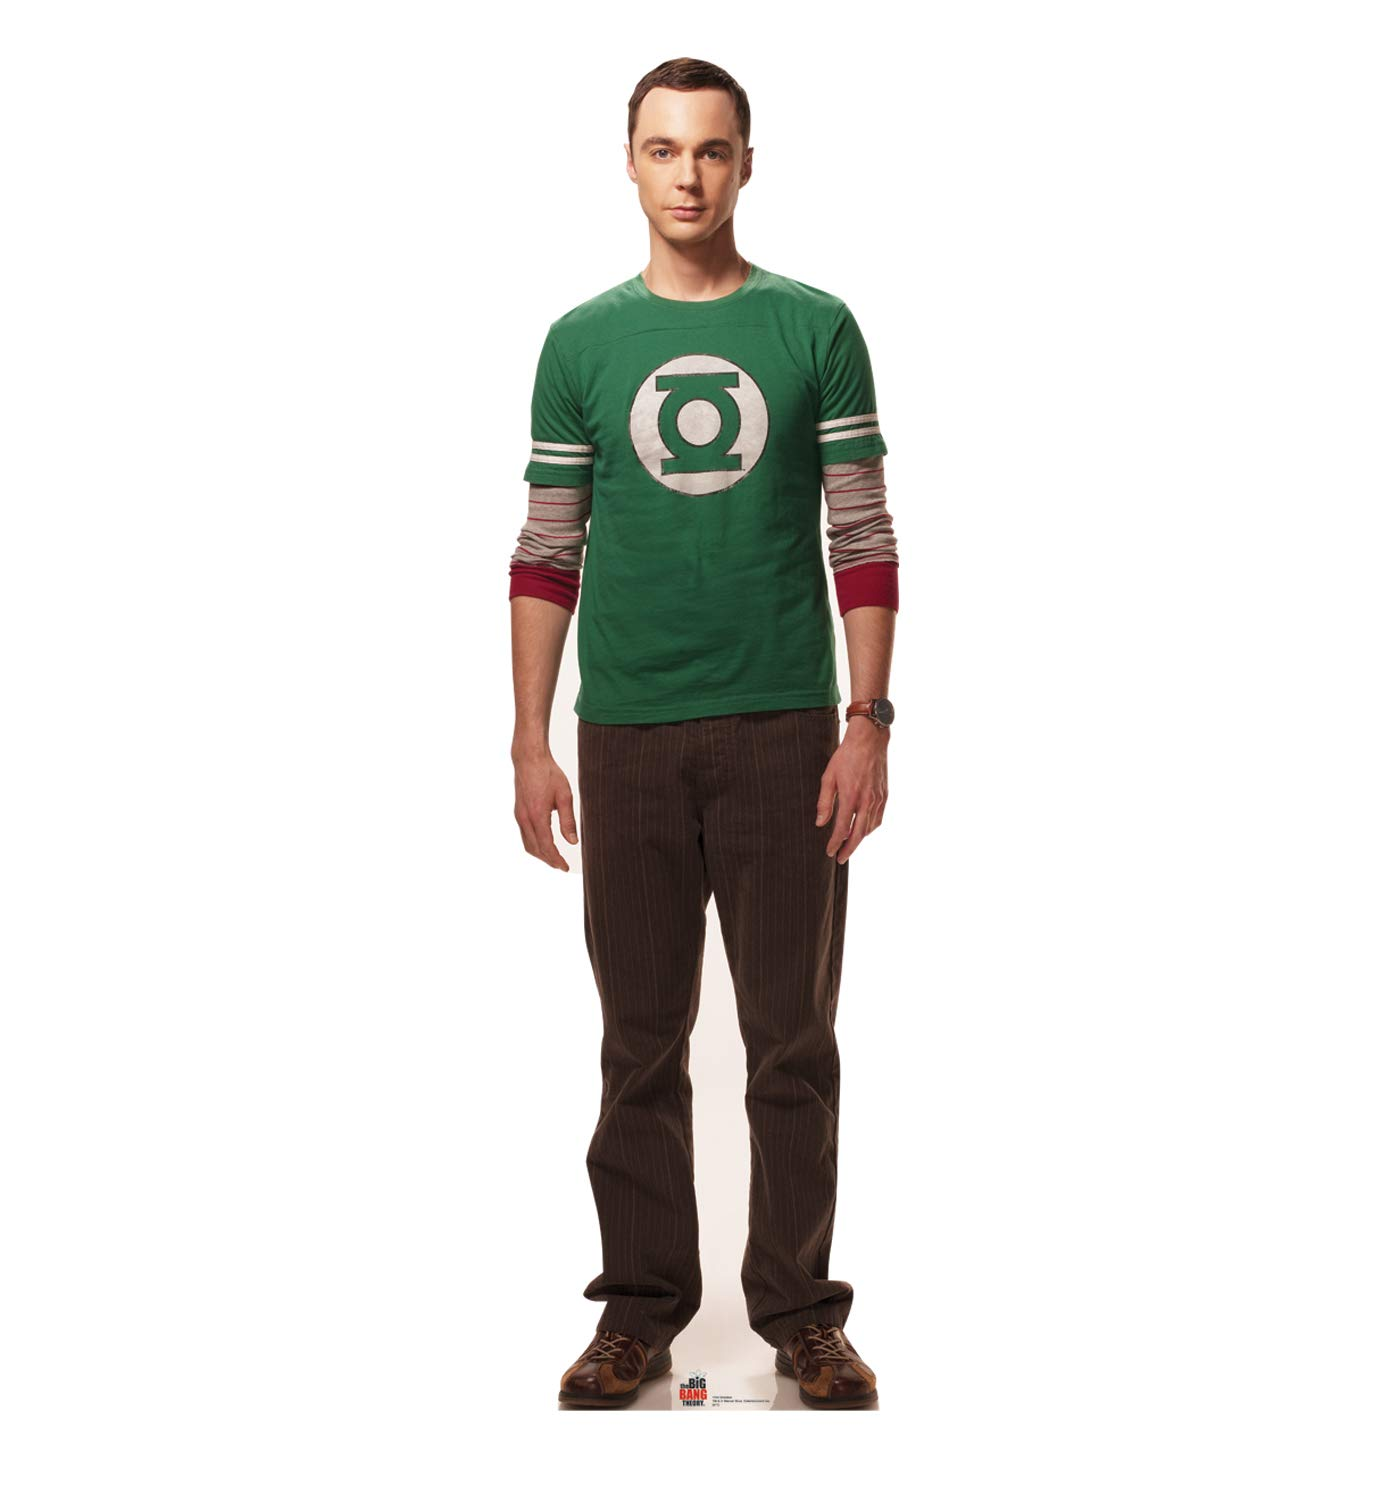 Advanced Graphics Sheldon Cooper Life Size Cardboard Cutout Standup - The Big Bang Theory